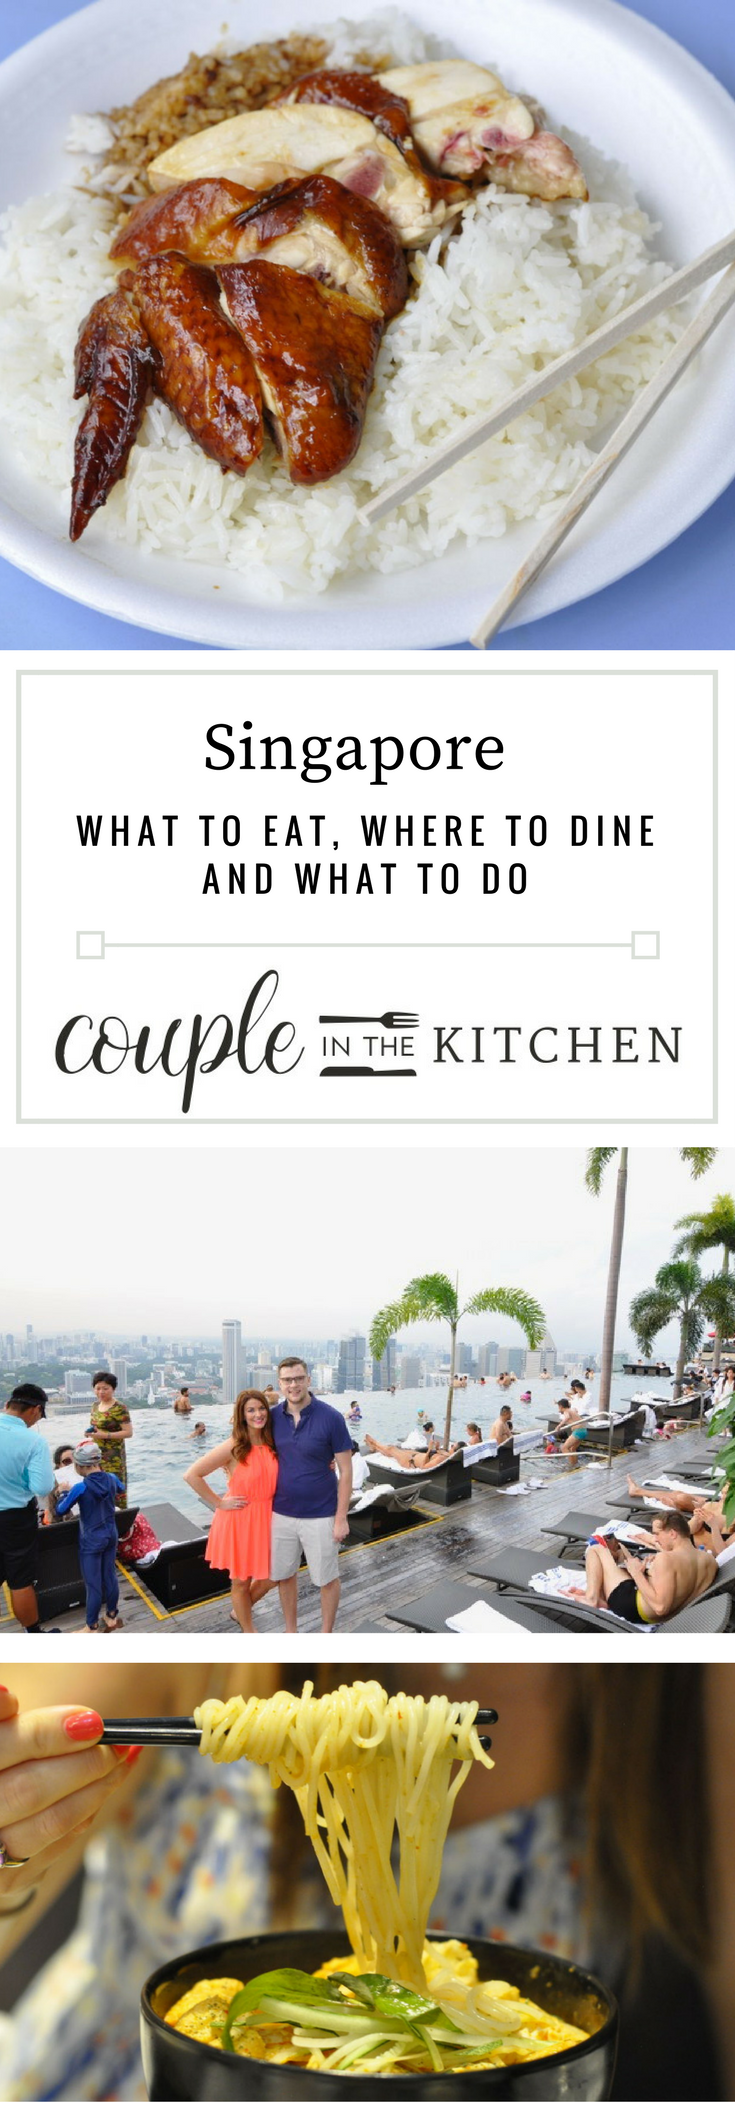 19 things to eat, see, and do in Singapore | coupleinthekitchen.com